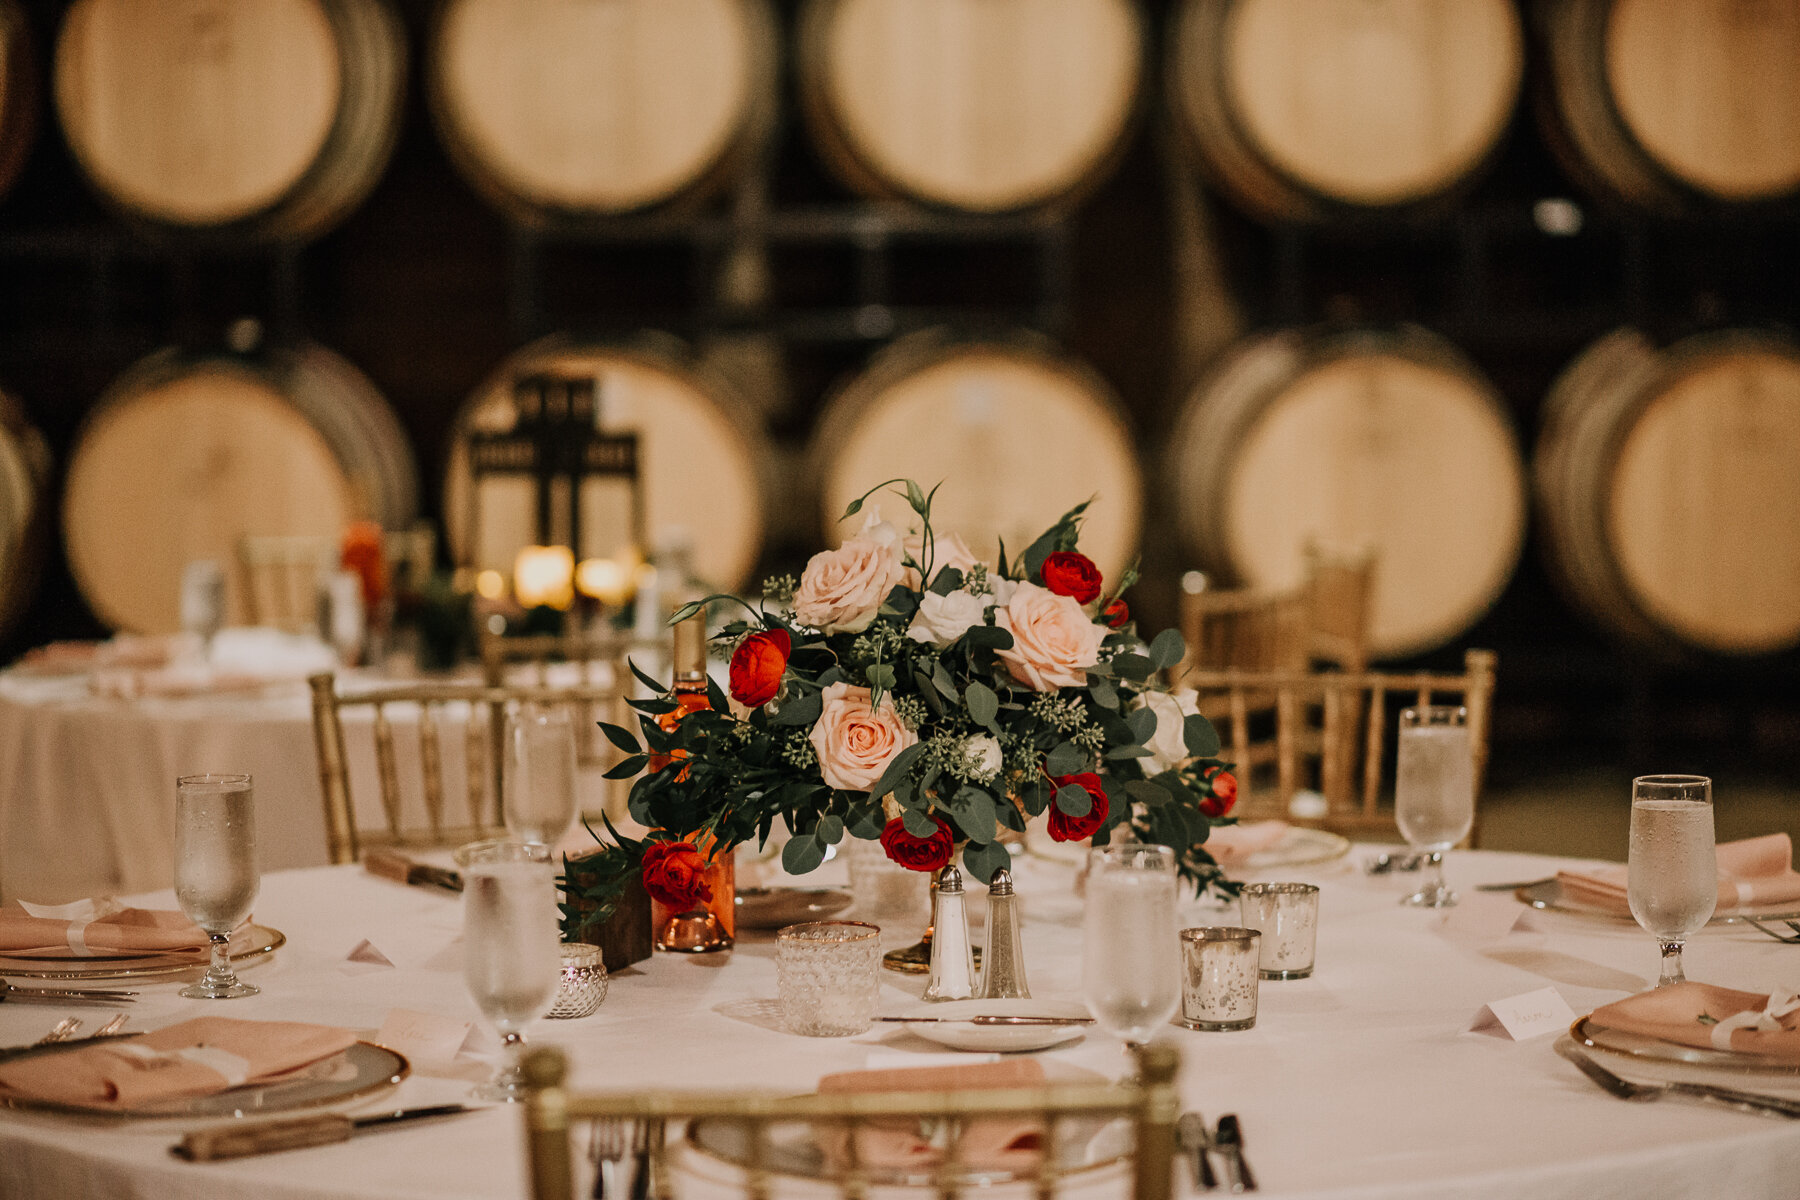 0609Swiftwater Cellars Wedding_Cle Elum Wedding_Montana Wedding Photographer_Kat & Kyle_September 15, 2018-64.jpg